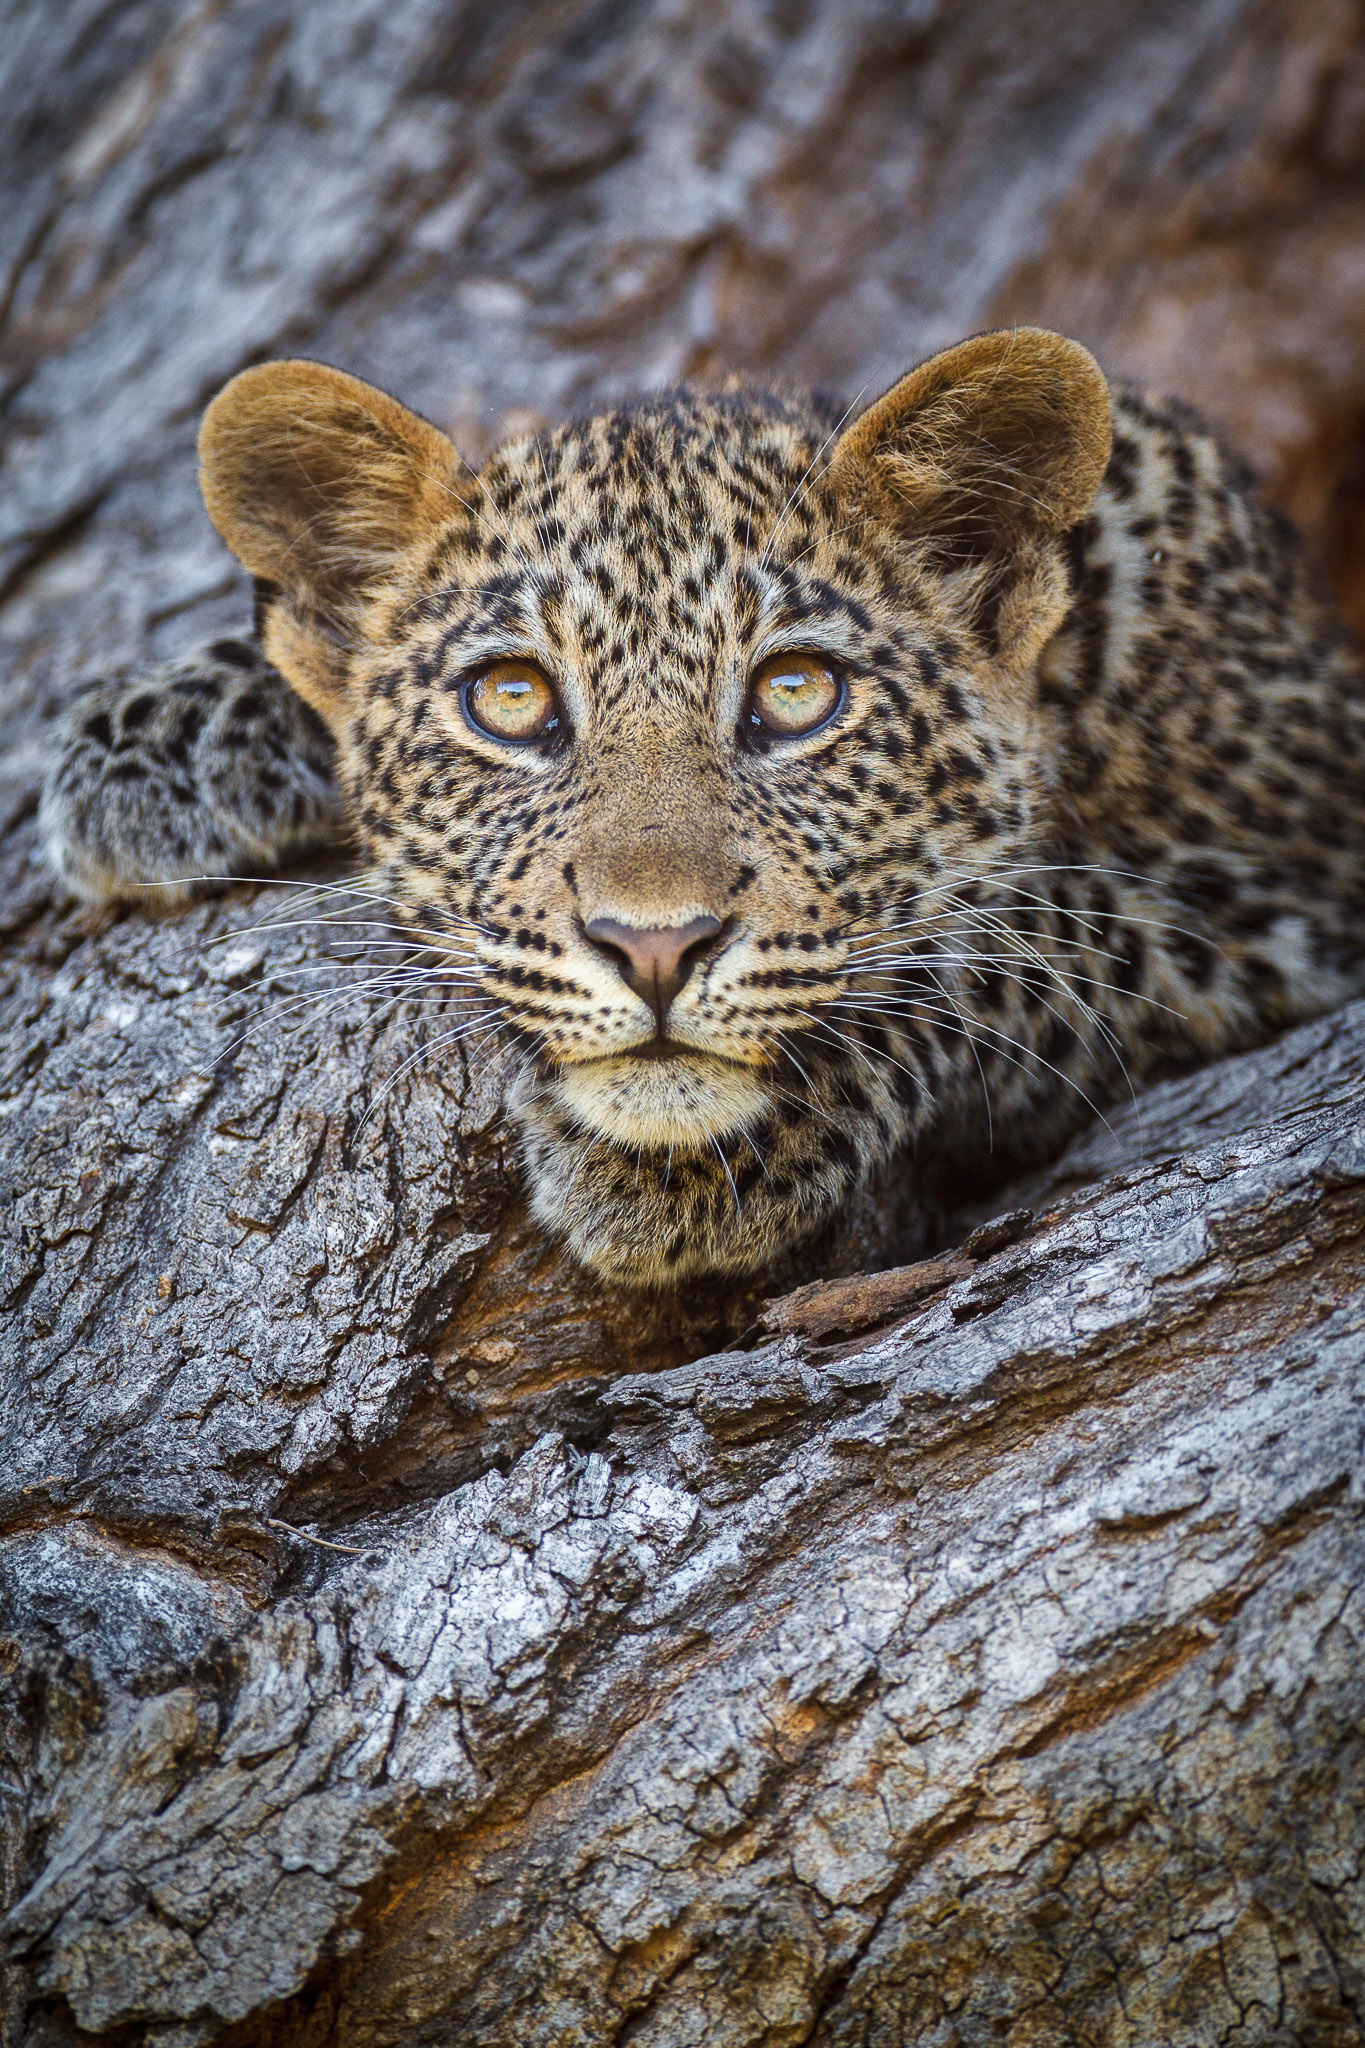 A leopard cub in a tree